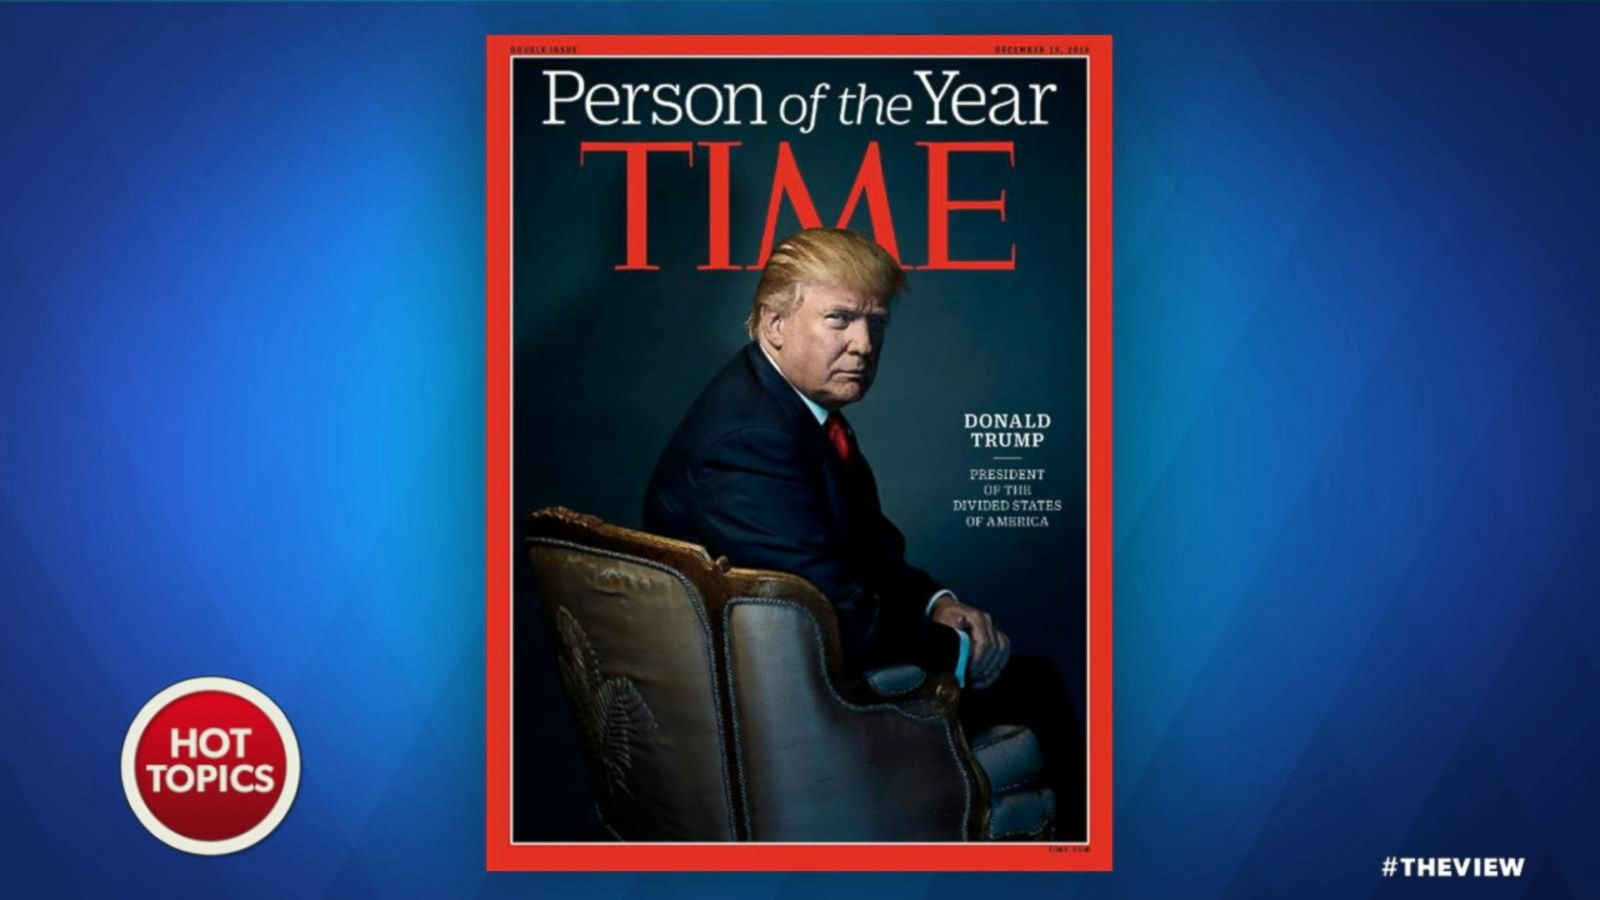 VIDEO: Donald Trump Named Time's Person of the Year